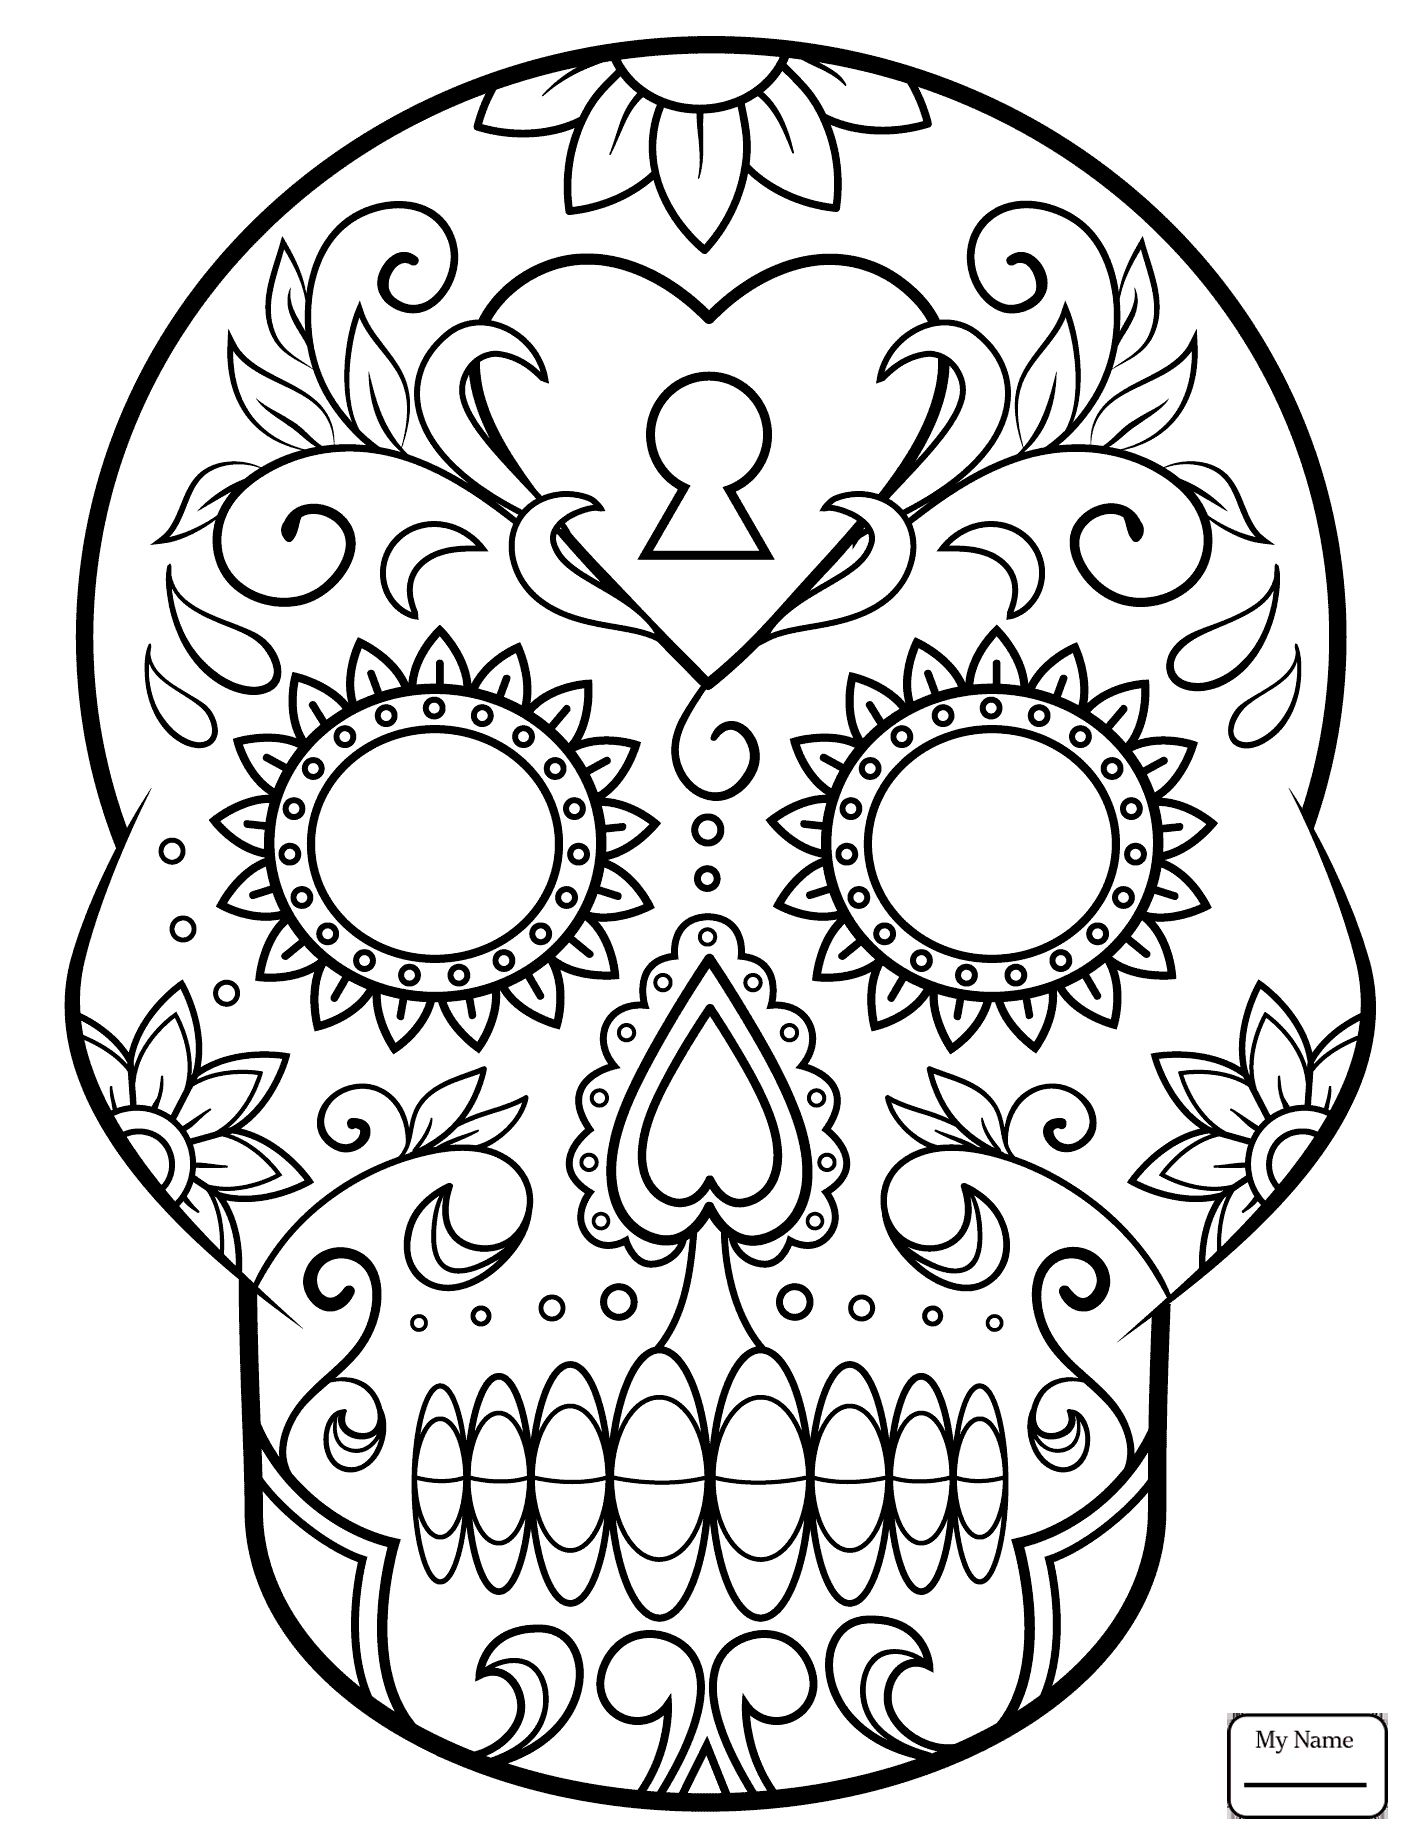 day of the dead skull coloring page sugar skull coloring pages coloring home skull day of dead coloring page the